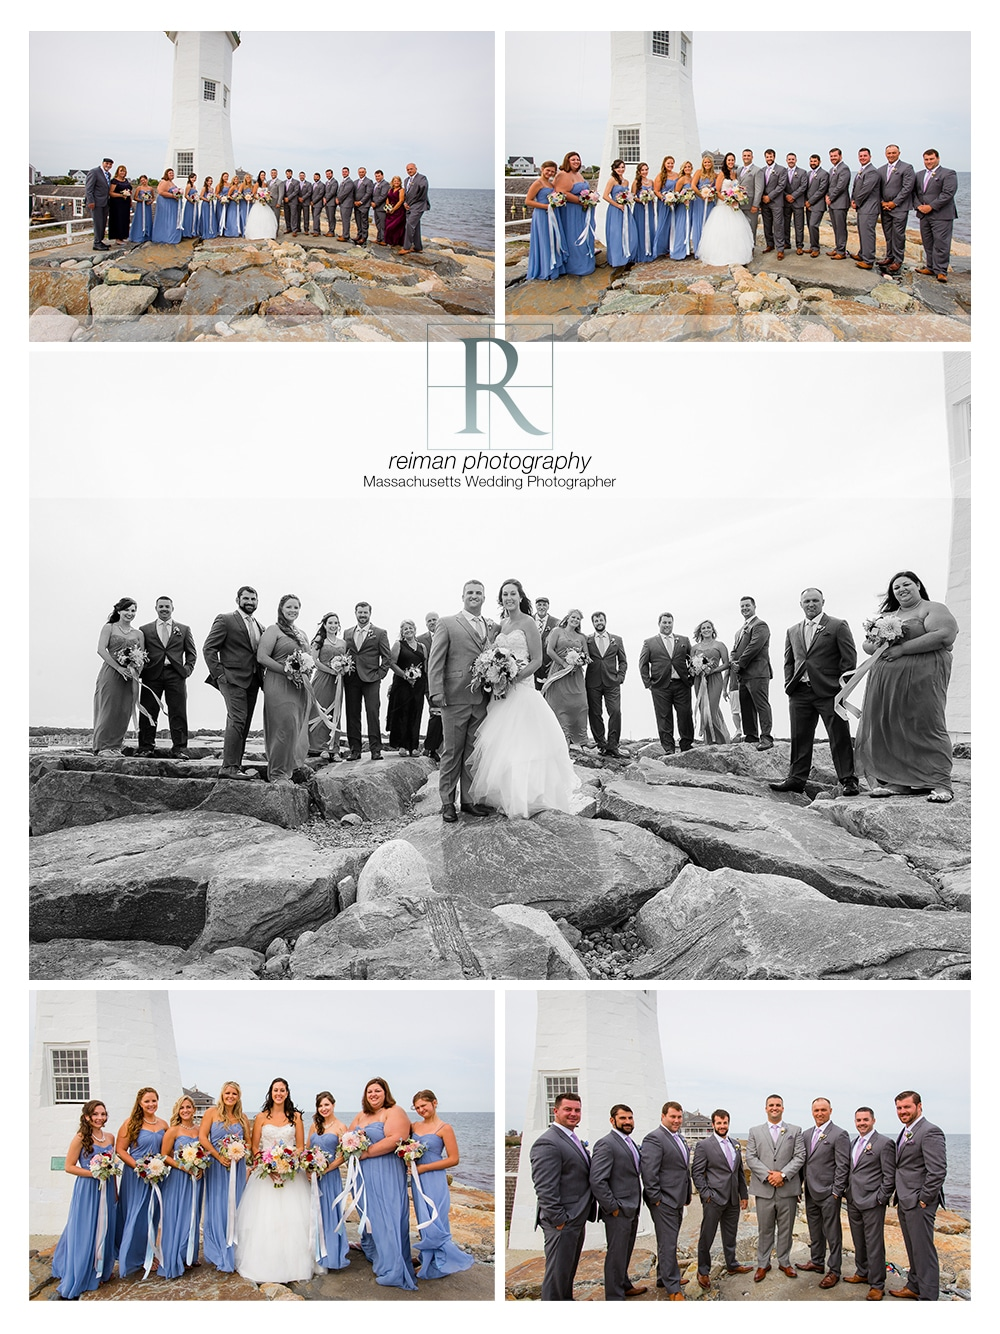 southers marsh wedding, Reiman Photography, September